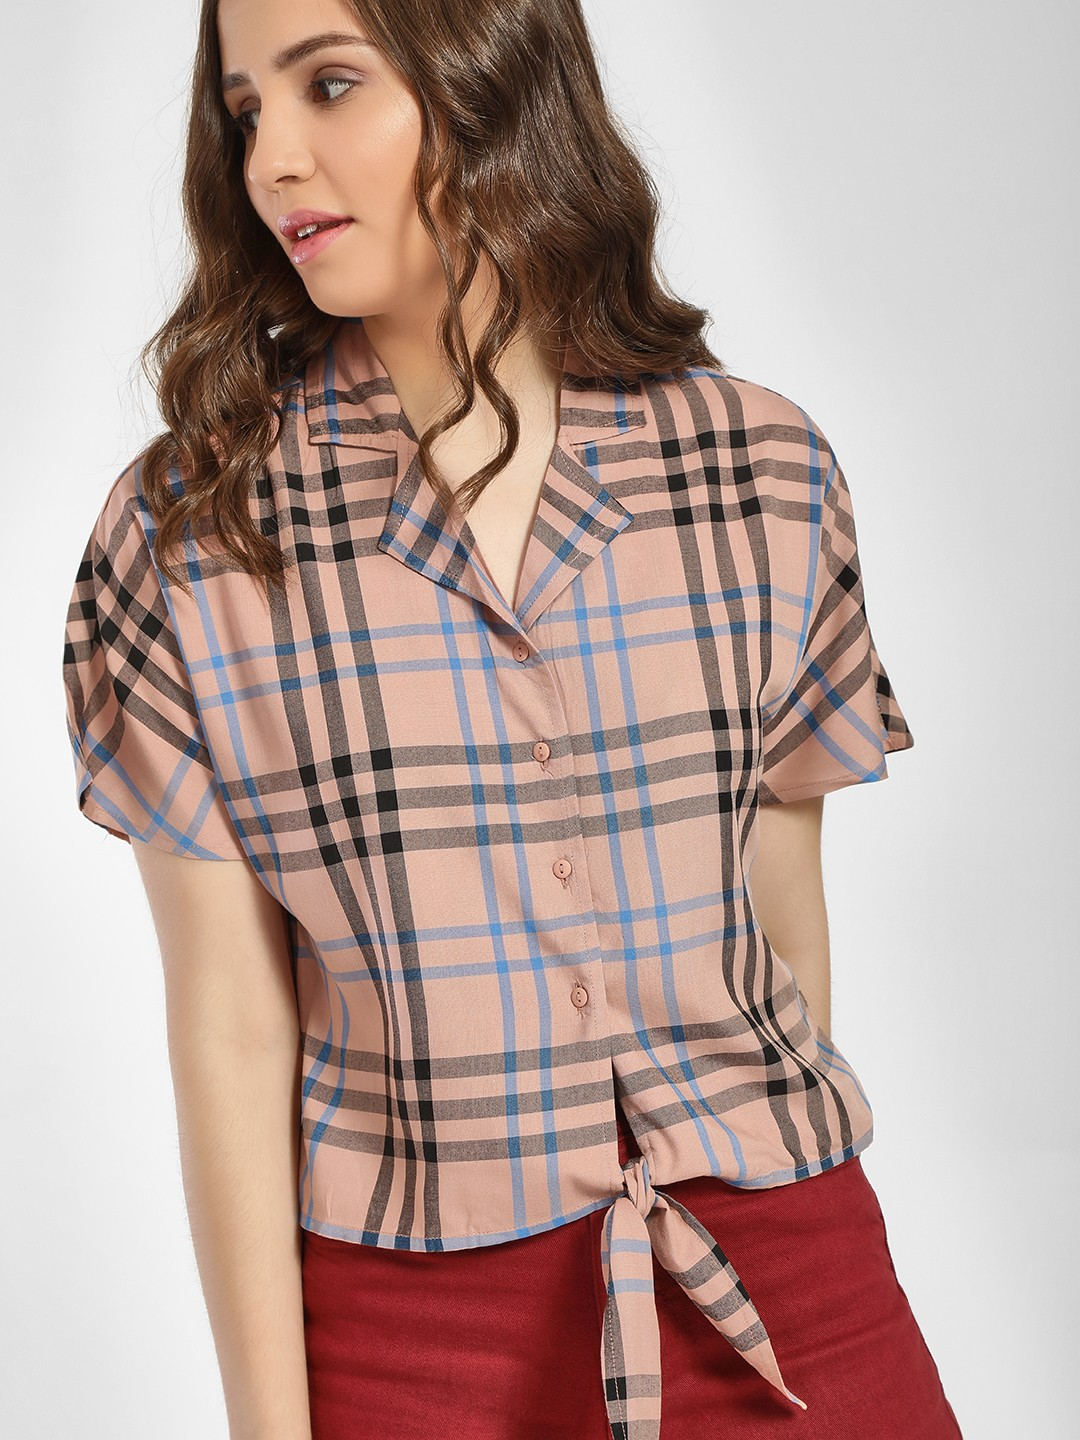 Only Pink Multi-Check Revere Collar Knot Shirt 1